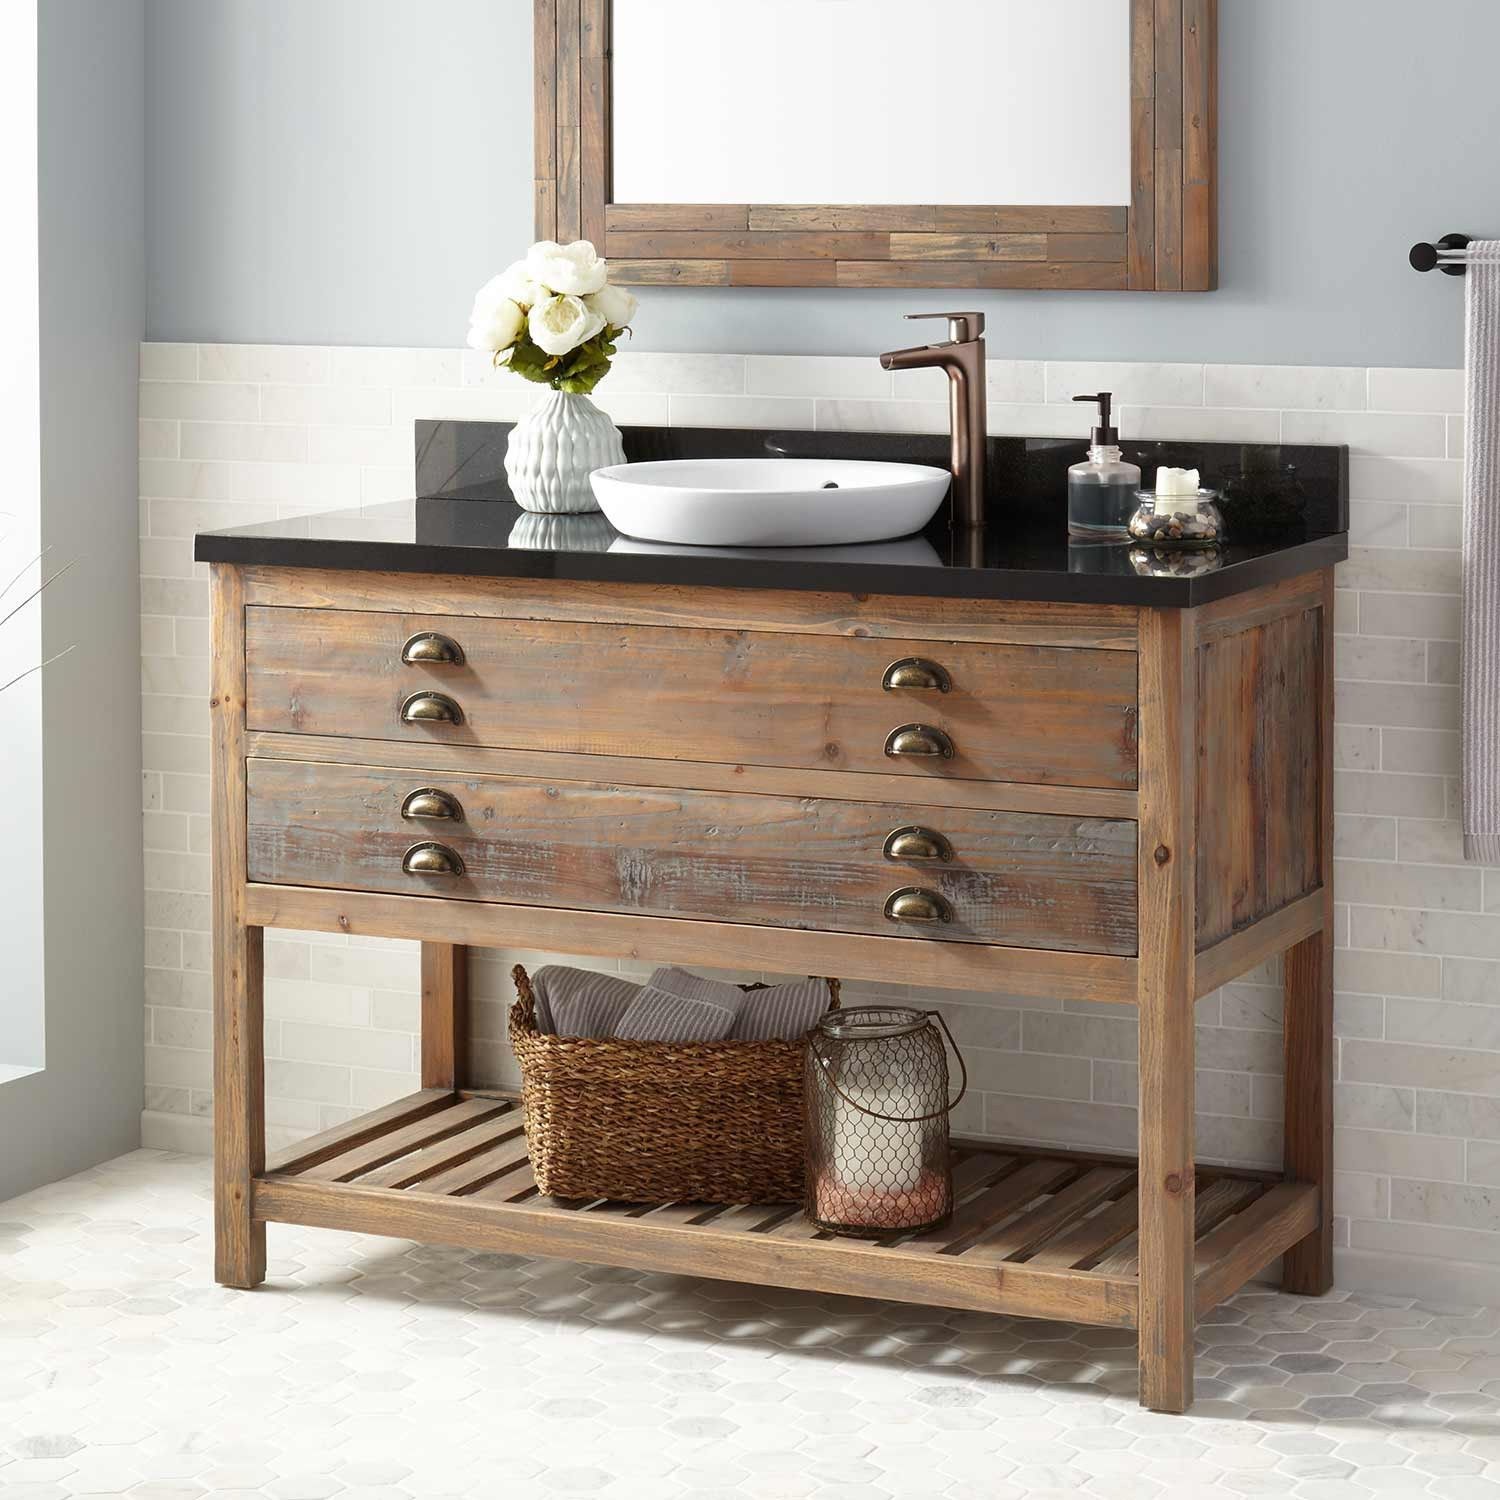 48 Benoist Reclaimed Wood Console Vanity For Semi Recessed Sink